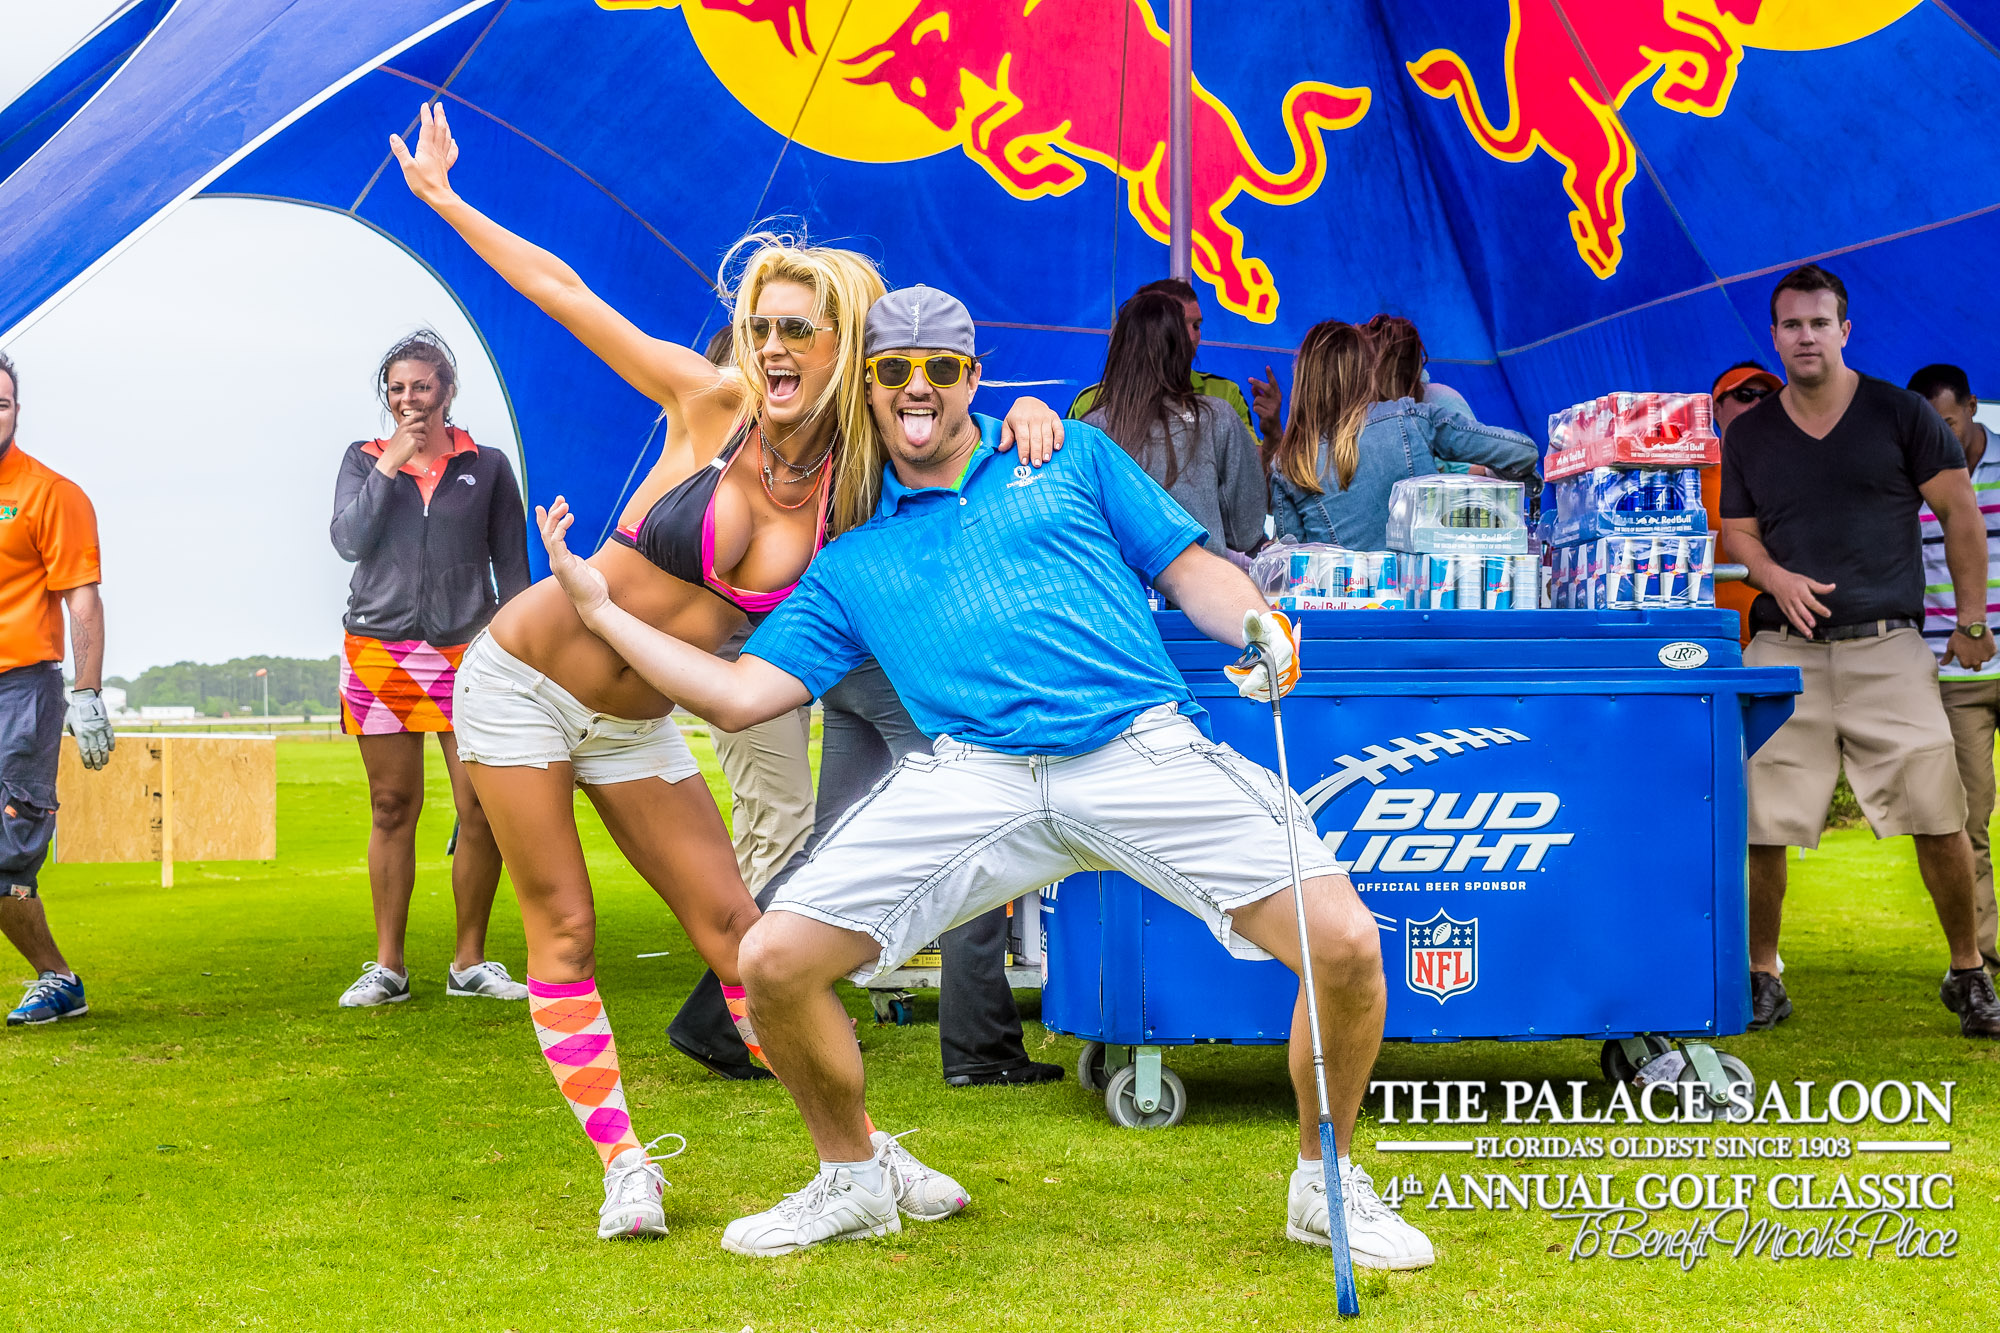 The Palace Saloon Charity Golf Classic gallery image #9